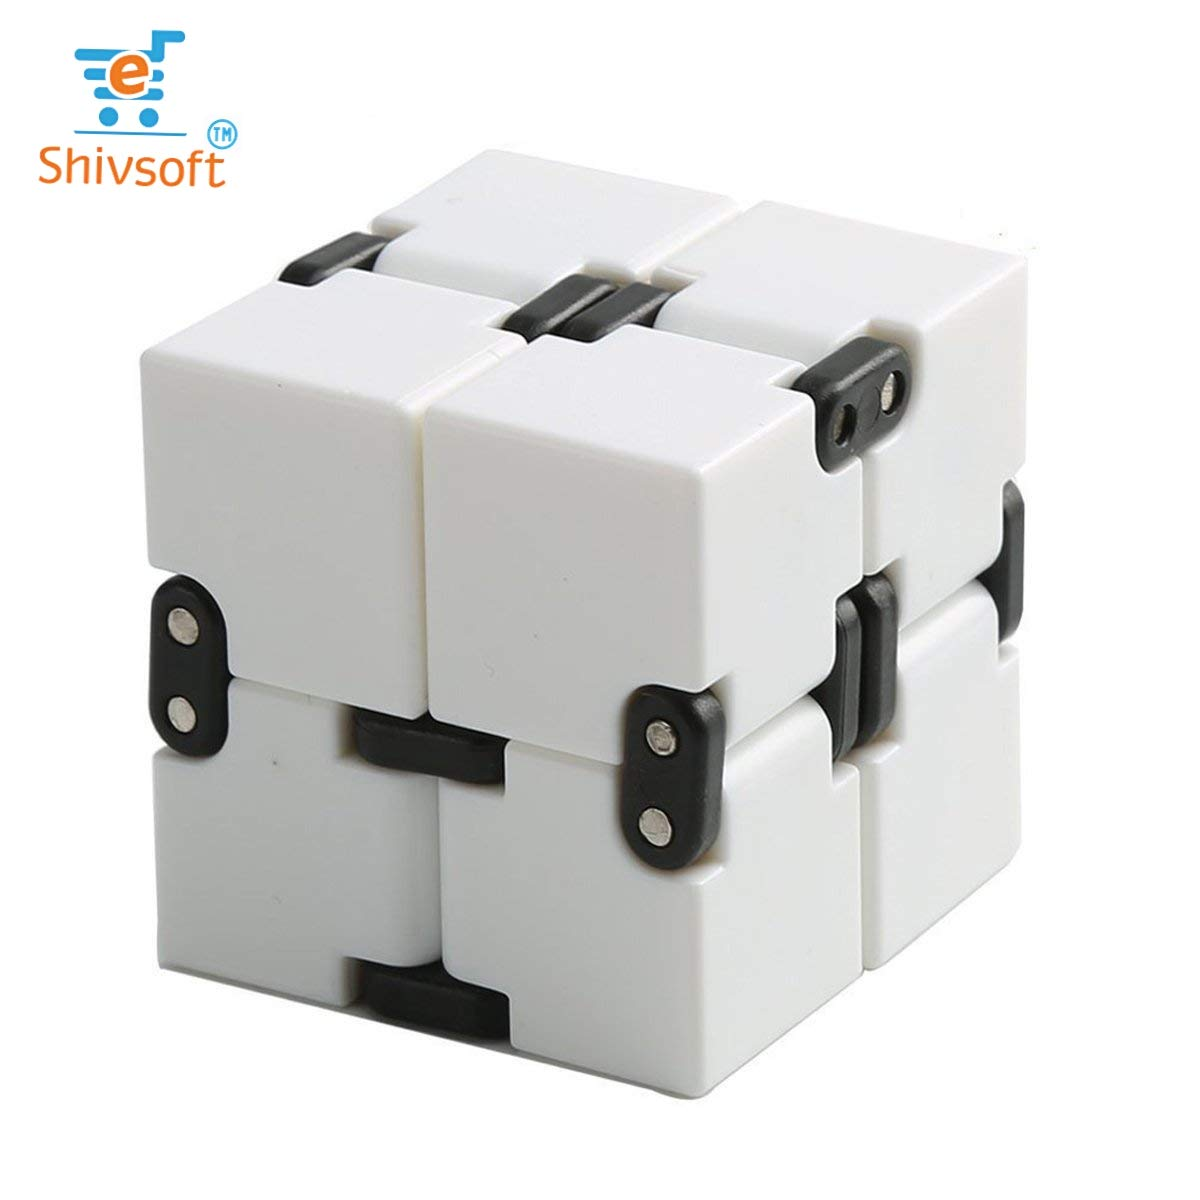 Infinity Cube Puzzle Decompression for Kids and Adults (White) by OK Seller (Image #8)